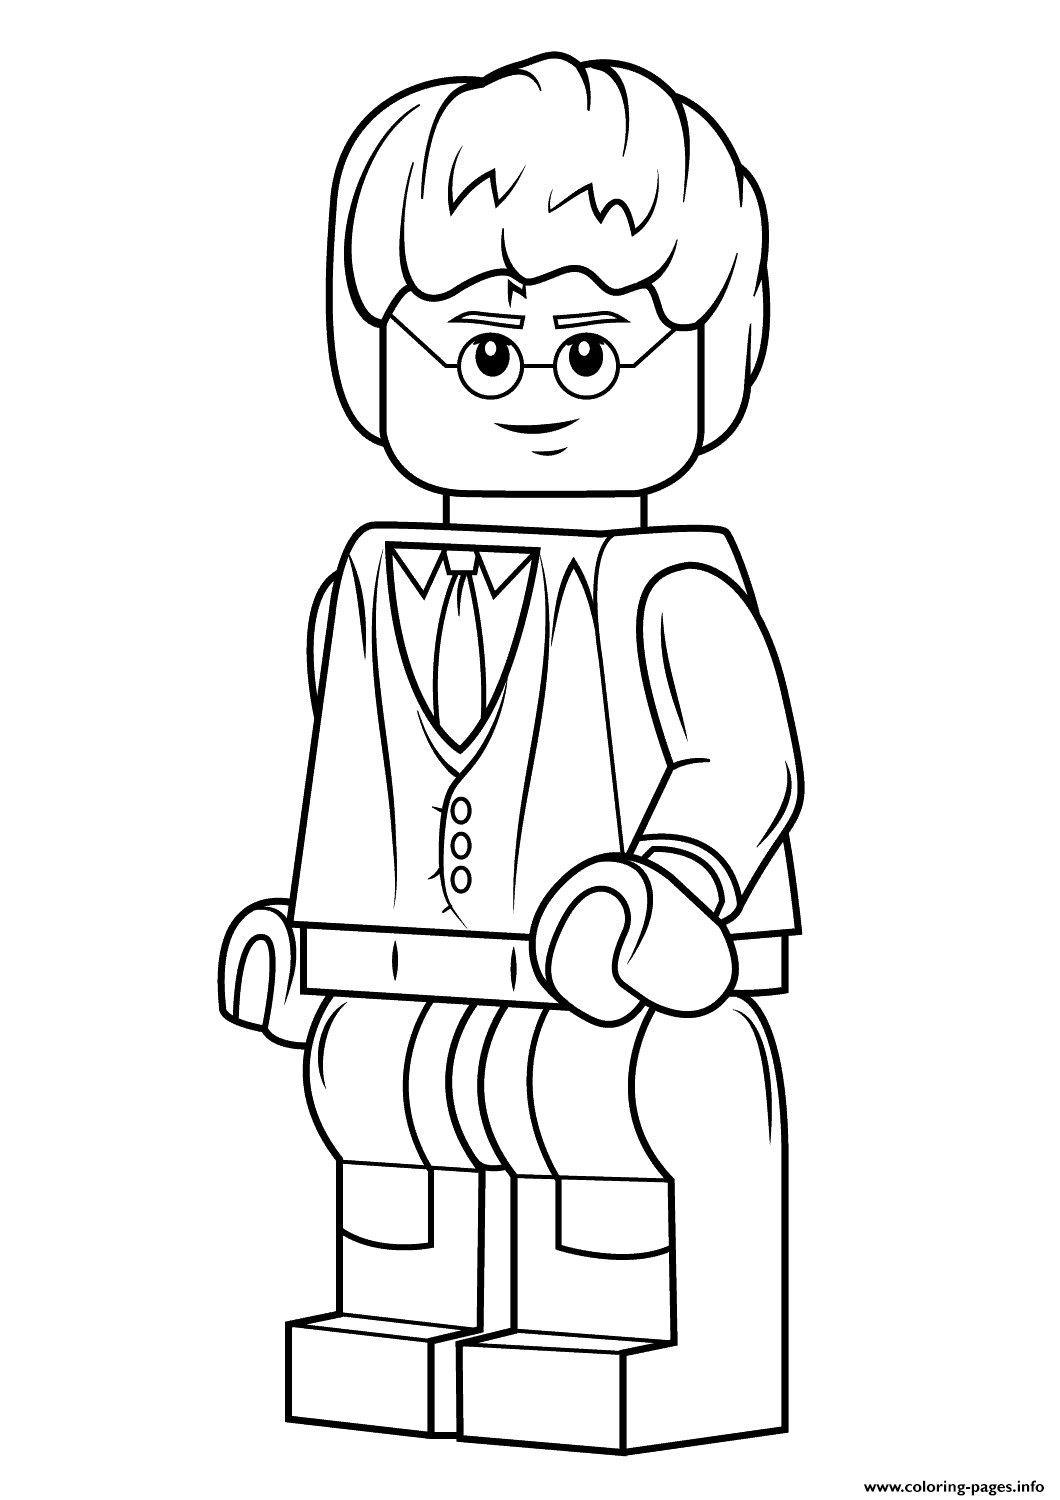 Lego harry potter coloring pages printable for Free printable lego coloring pages for kids